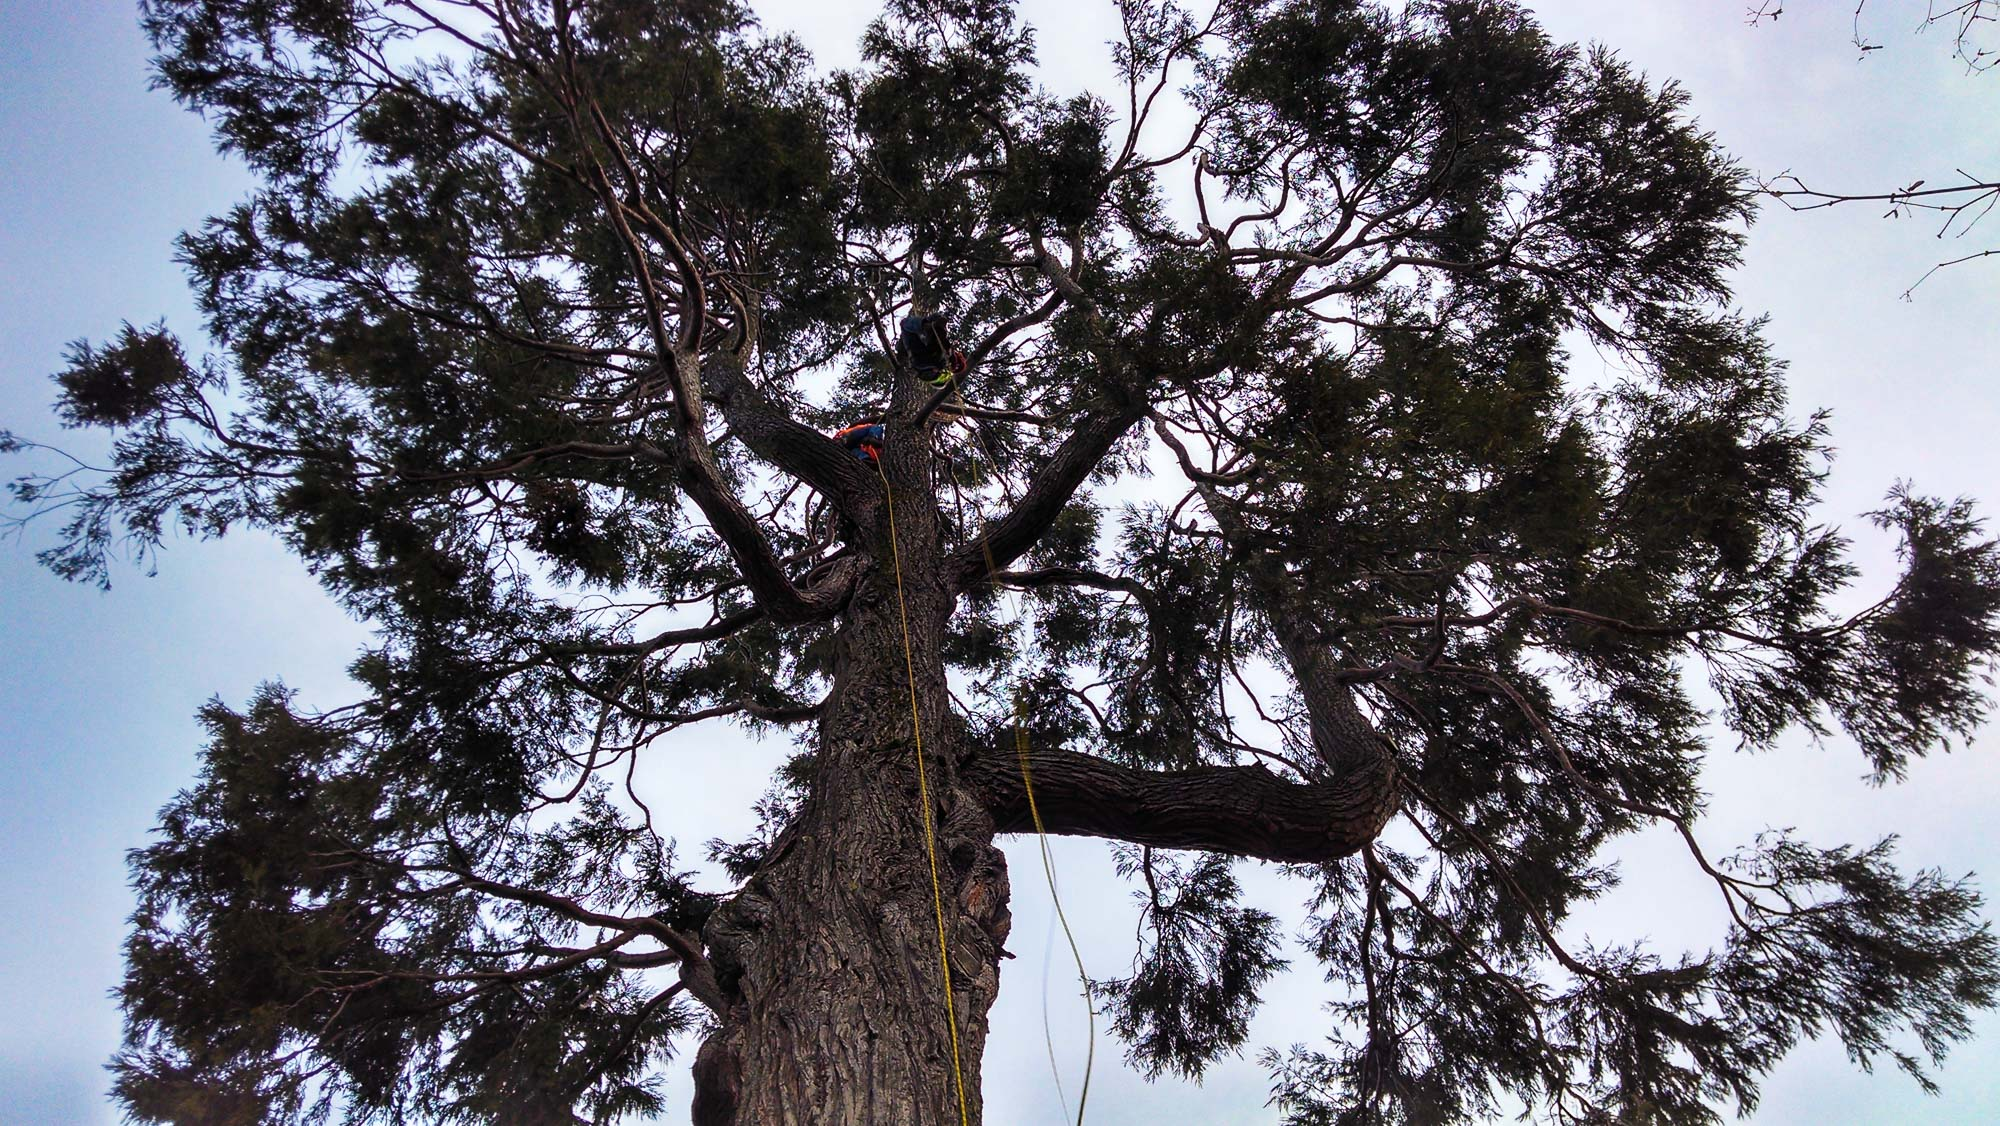 tree-service-removal-pruning-salem-oregon-18